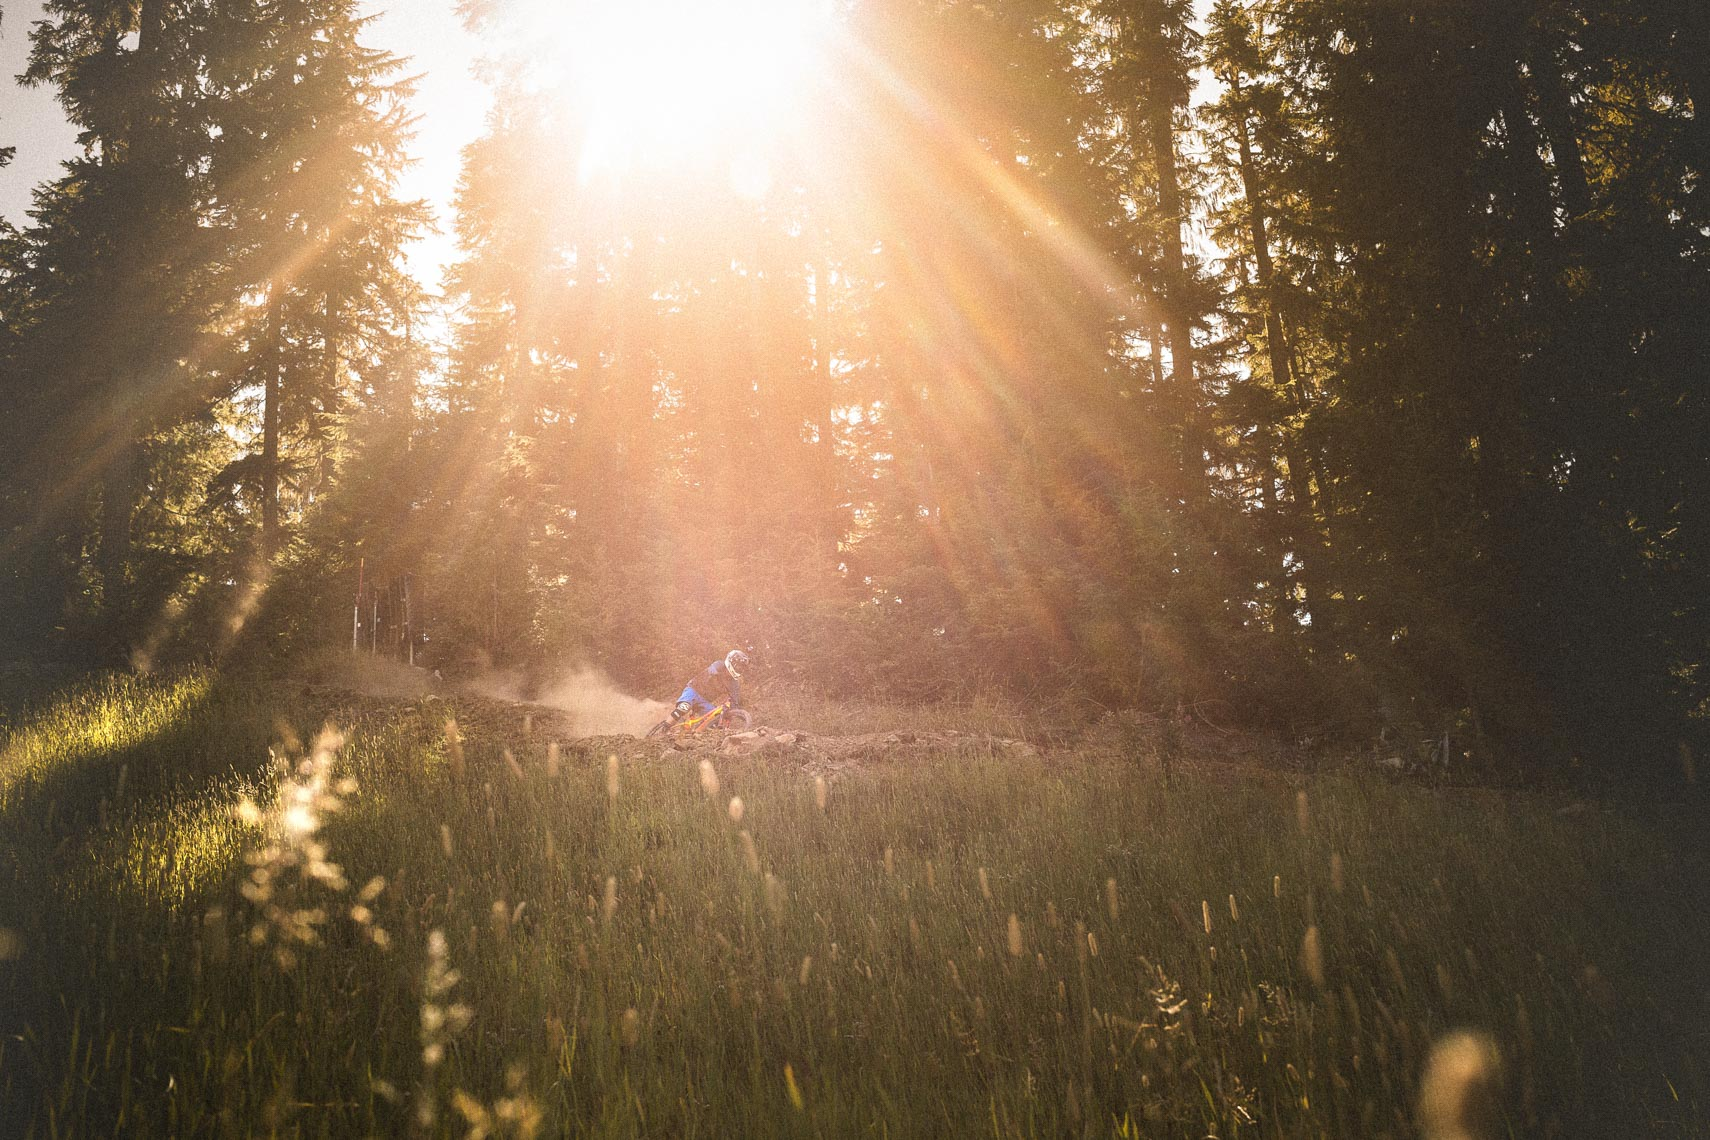 Sun flare in the Whistler bike park with a mountain biker